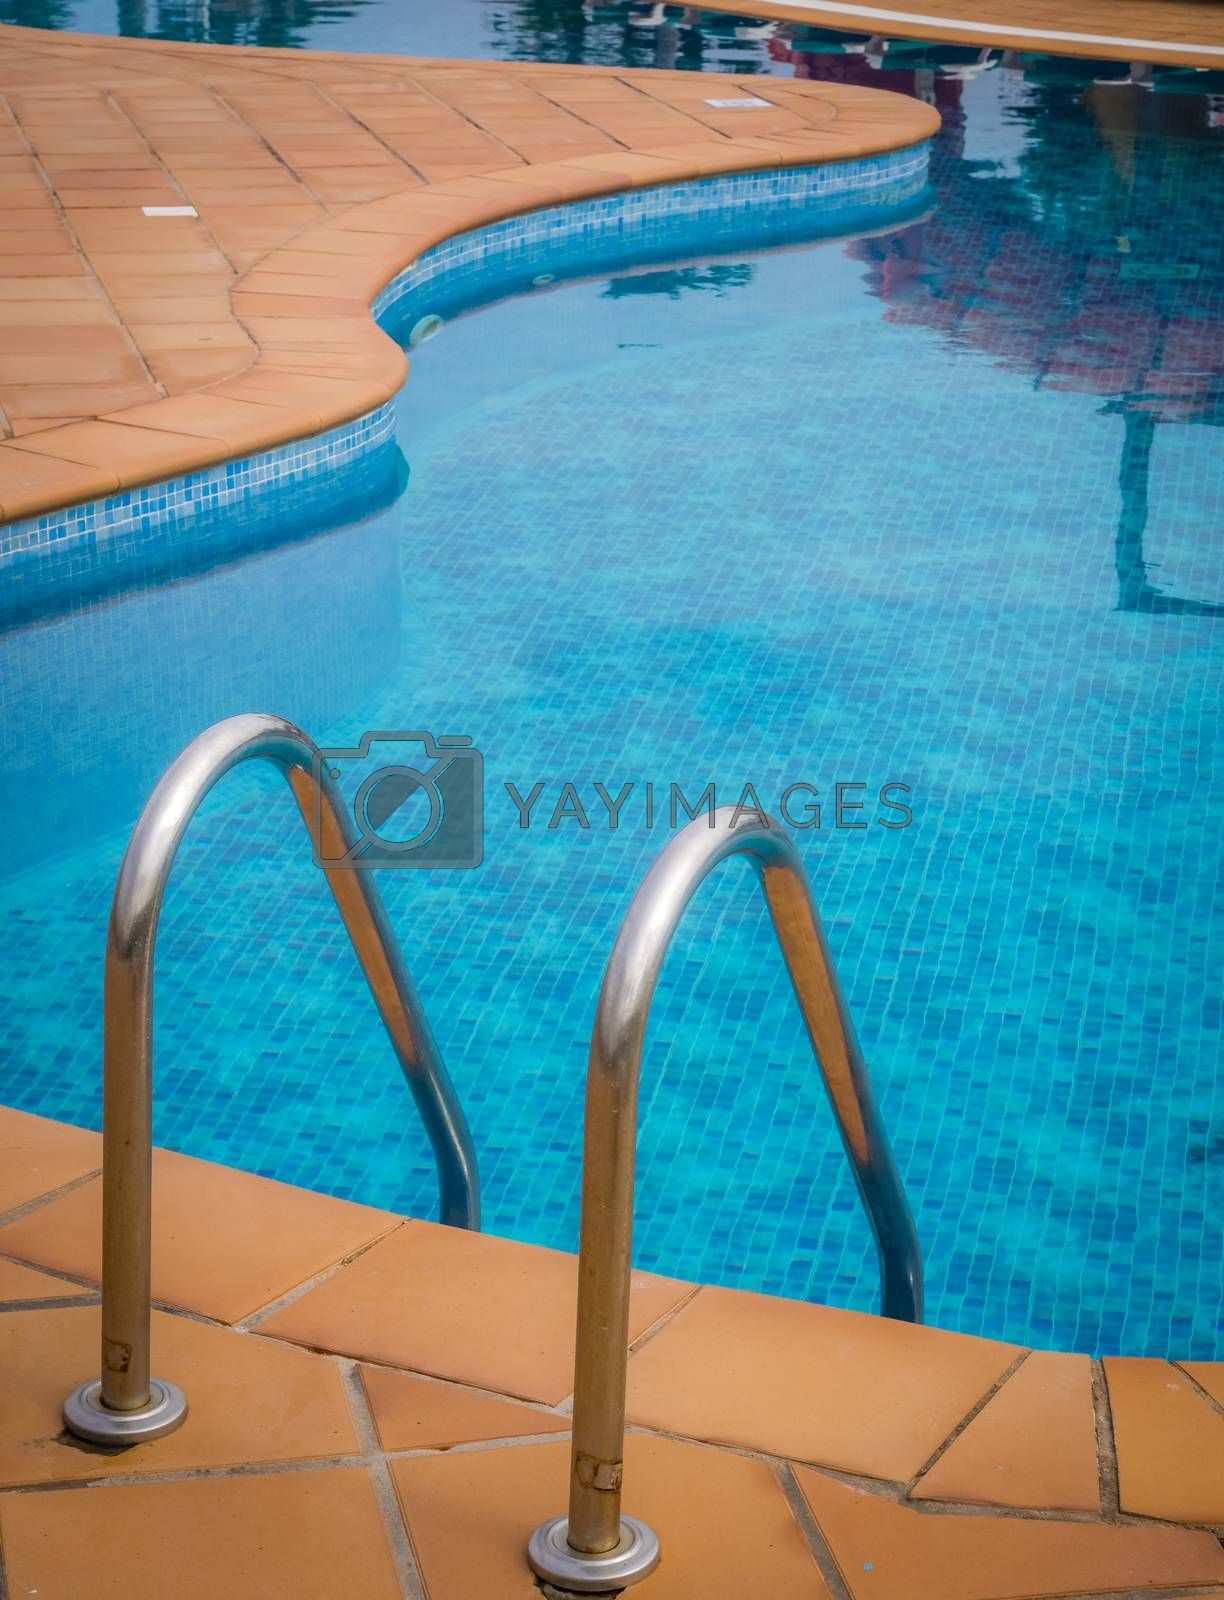 Detail of swimming pool ladder in a holiday resort